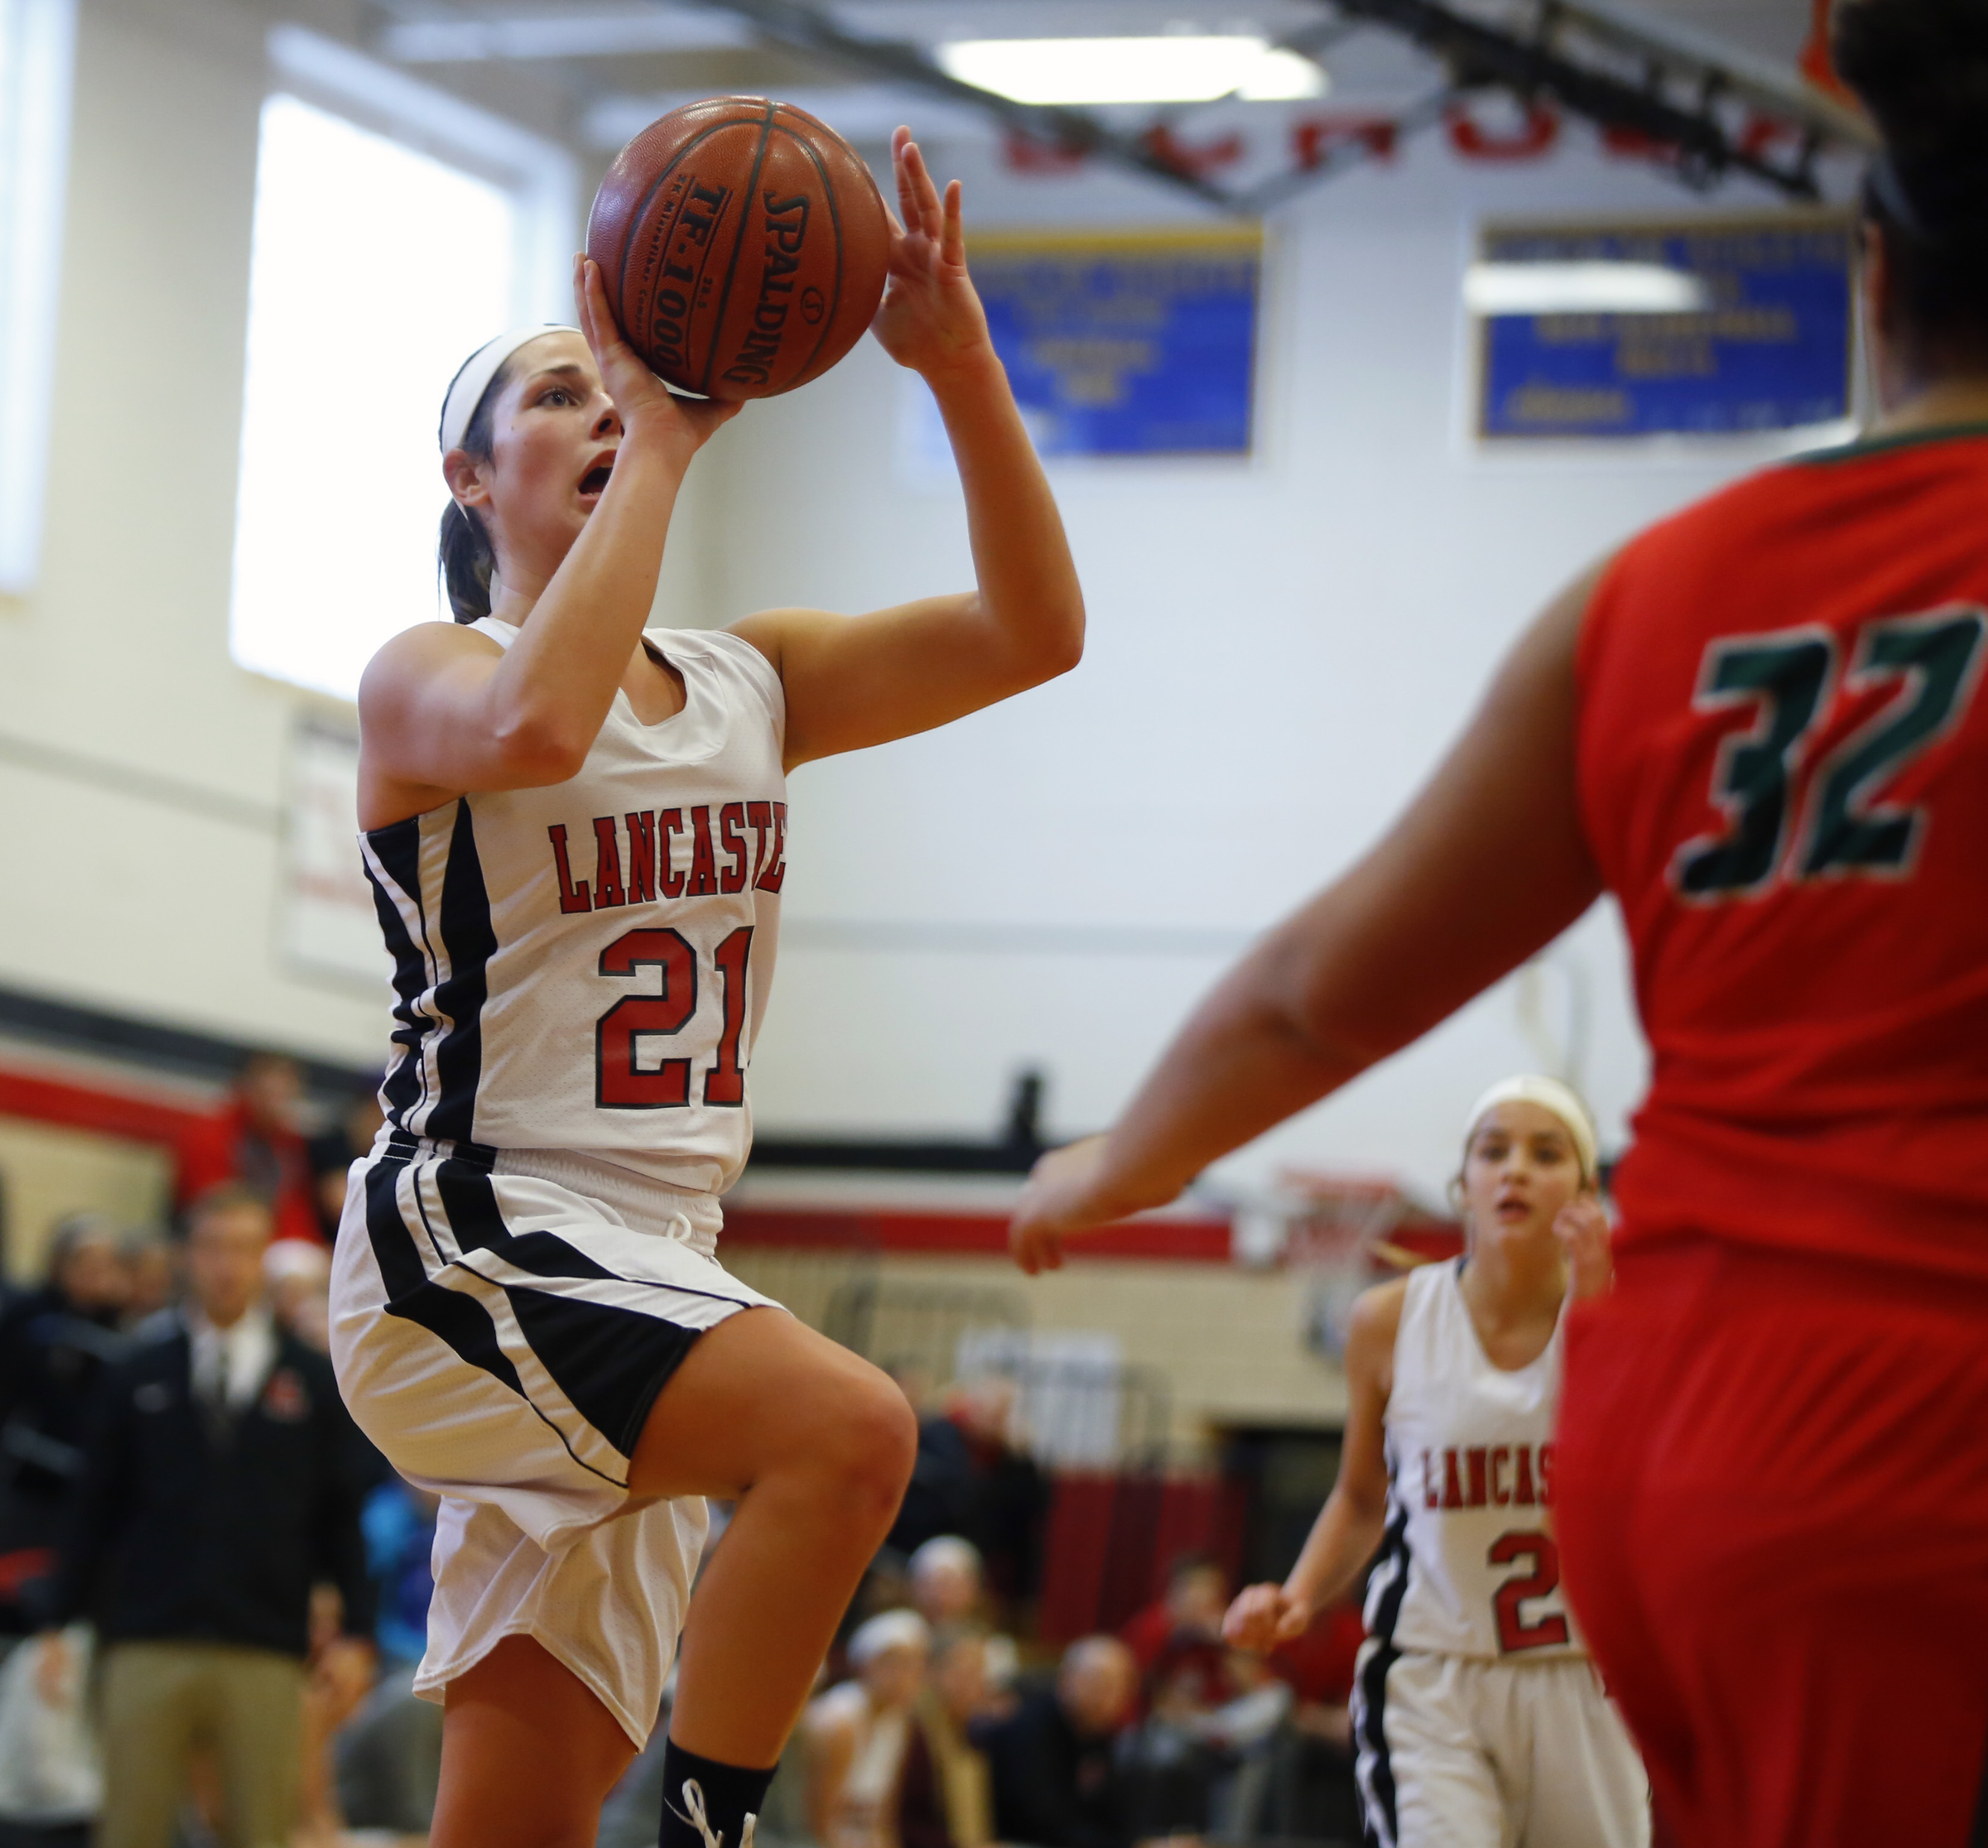 Lancaster's Molly Mahony shoots against Jamestown during first half action at Lancaster high school on Saturday. The Legends earned the league win. (Harry Scull Jr./Buffalo News)